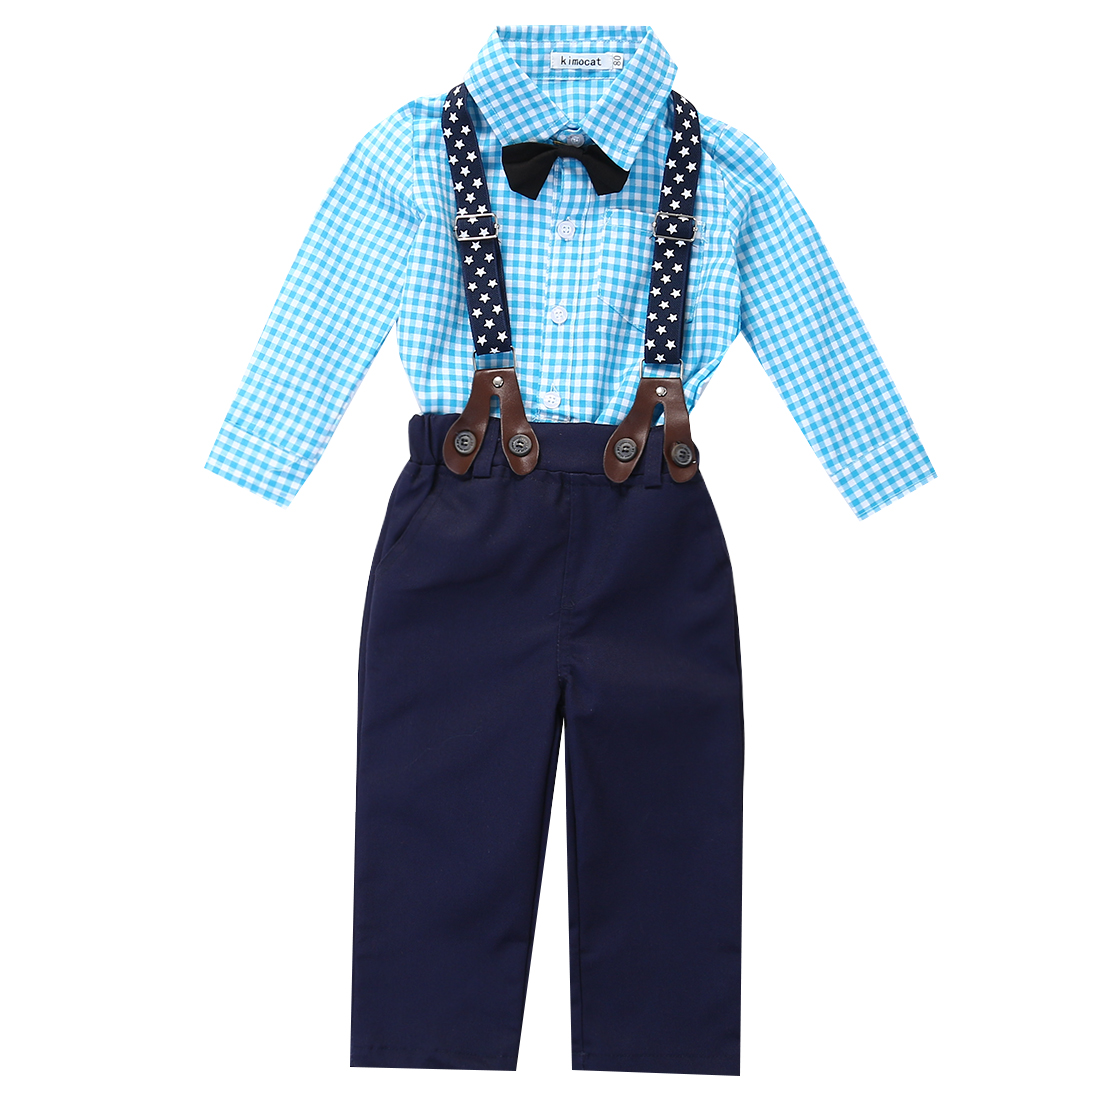 058ed70c4 2pcs Newborn Baby Boy Clothes Bow Tie Plaid Shirt+Suspender Pants Trousers  Overalls Outfits Kids Clothing Set 0 24M-in Clothing Sets from Mother & Kids  on ...